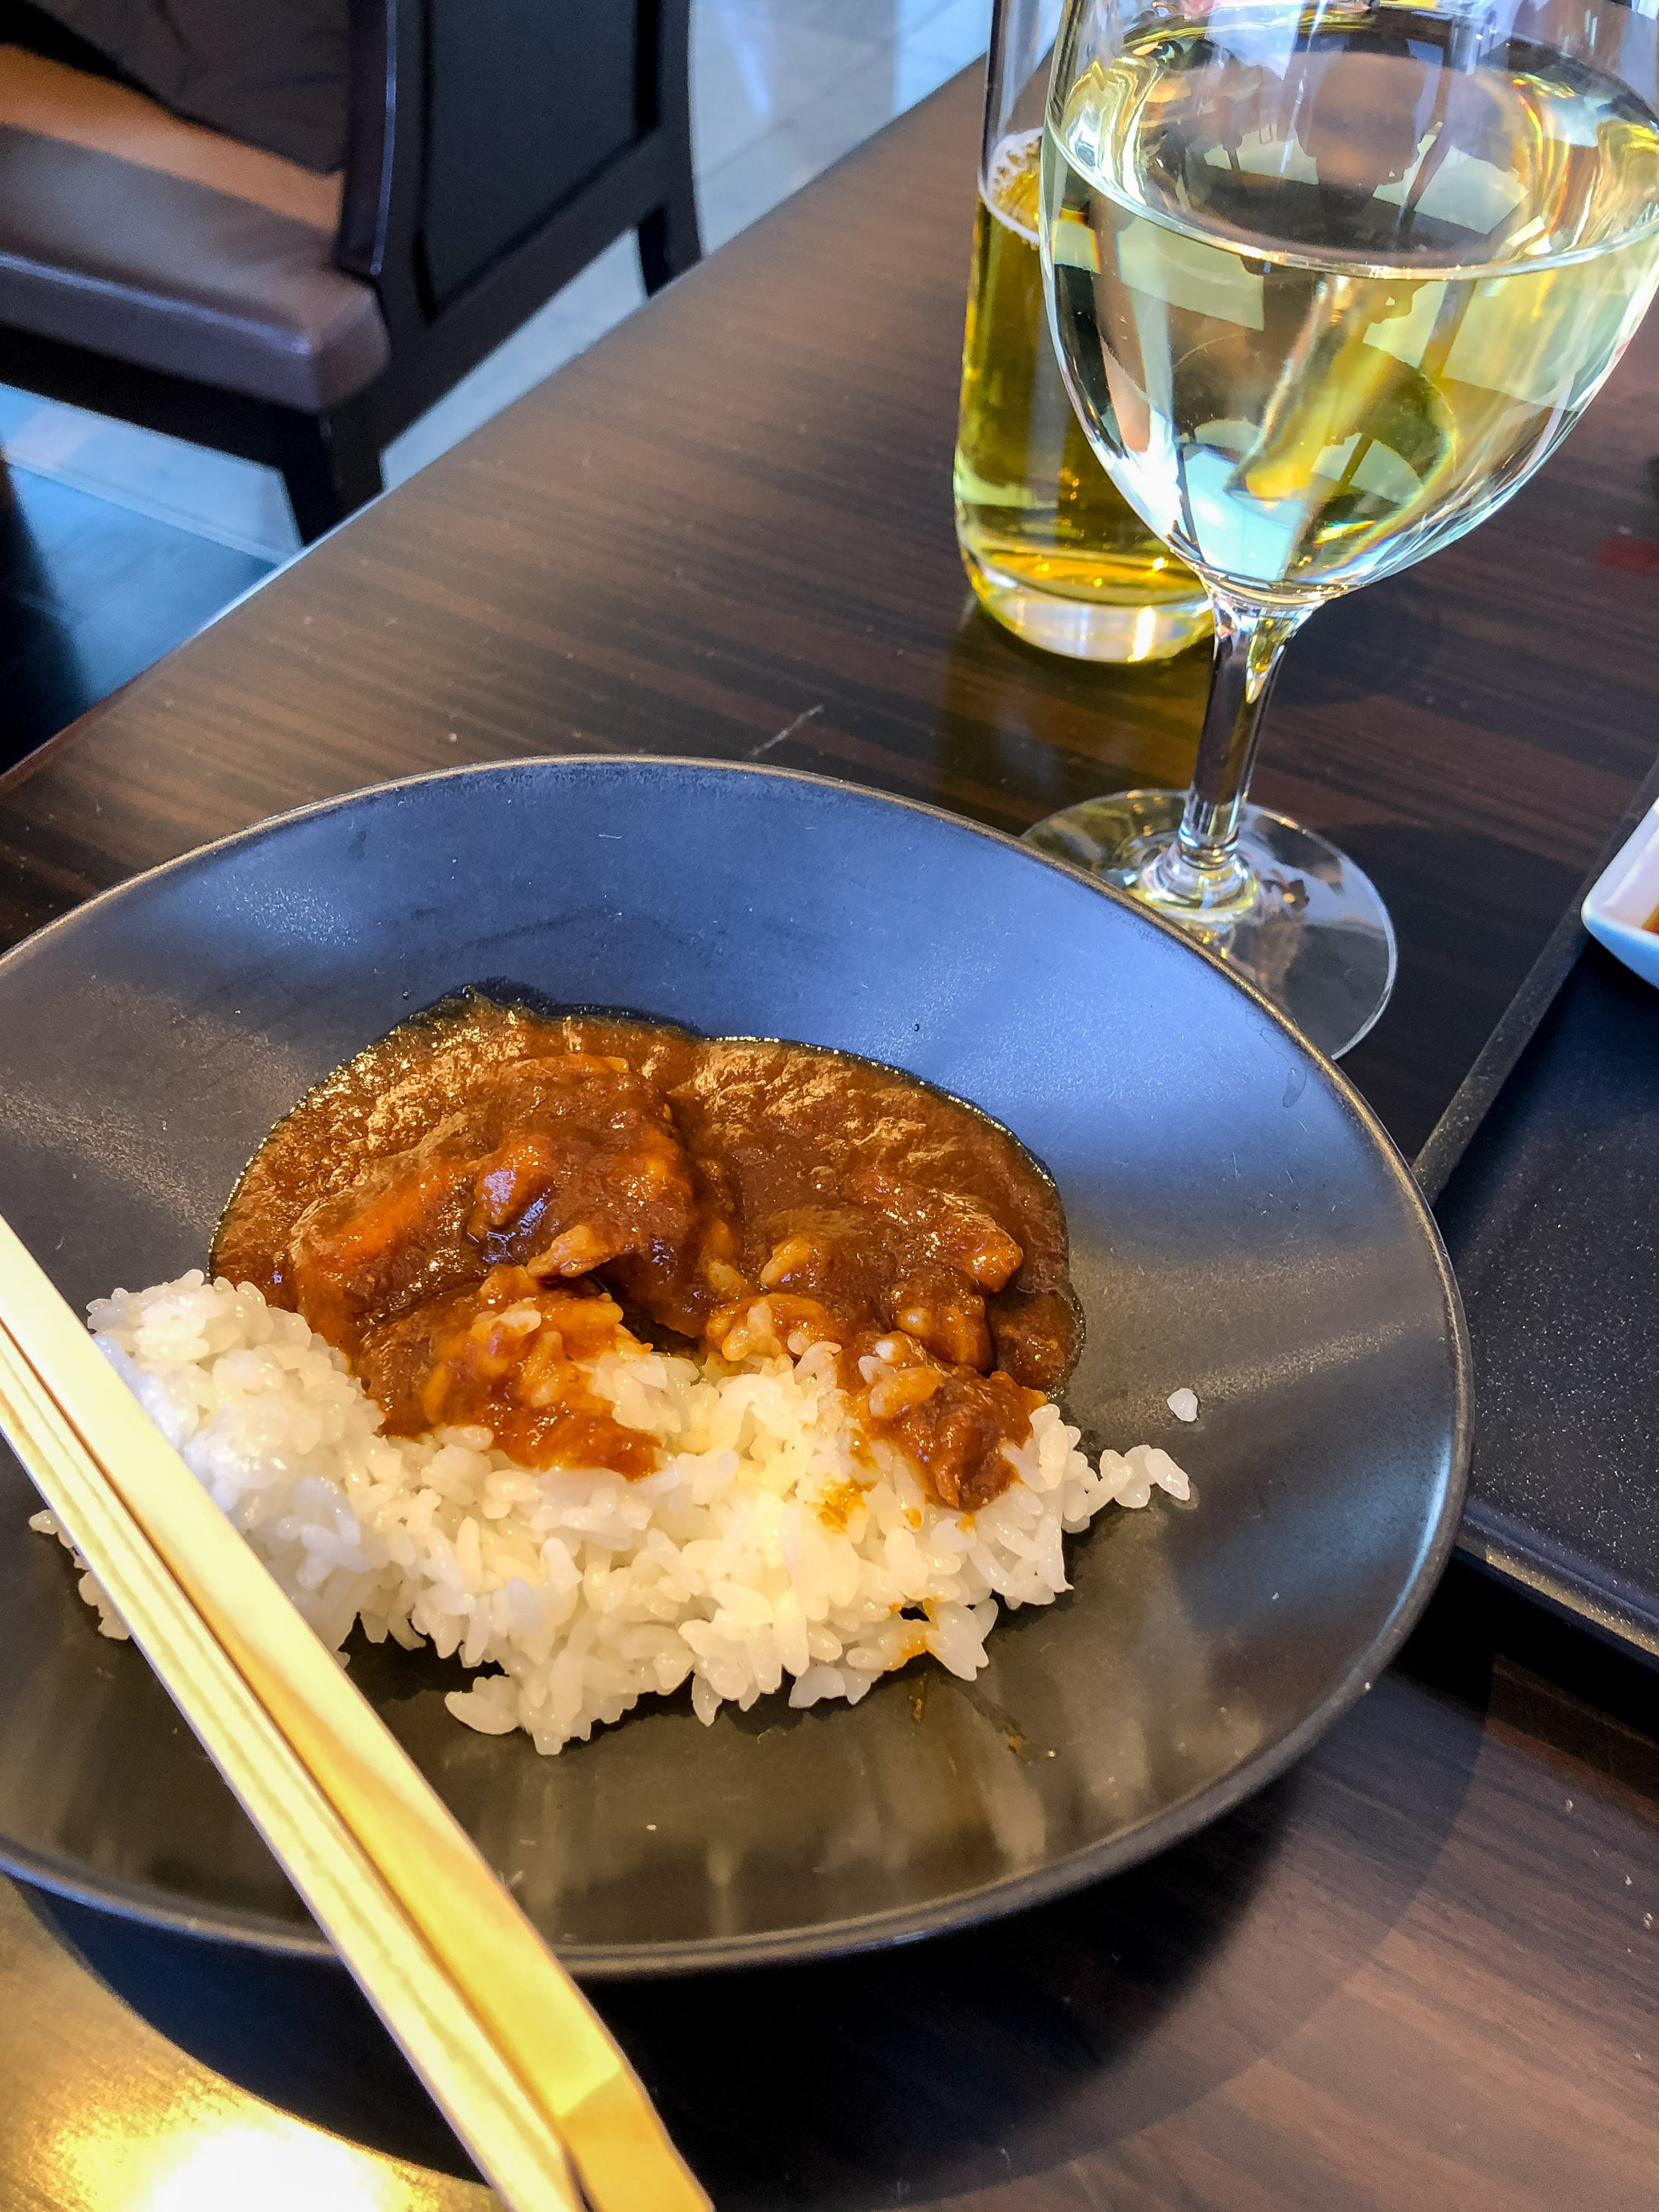 Beef curry at the Japan Airlines First Class Lounge at Tokyo Narita Airport